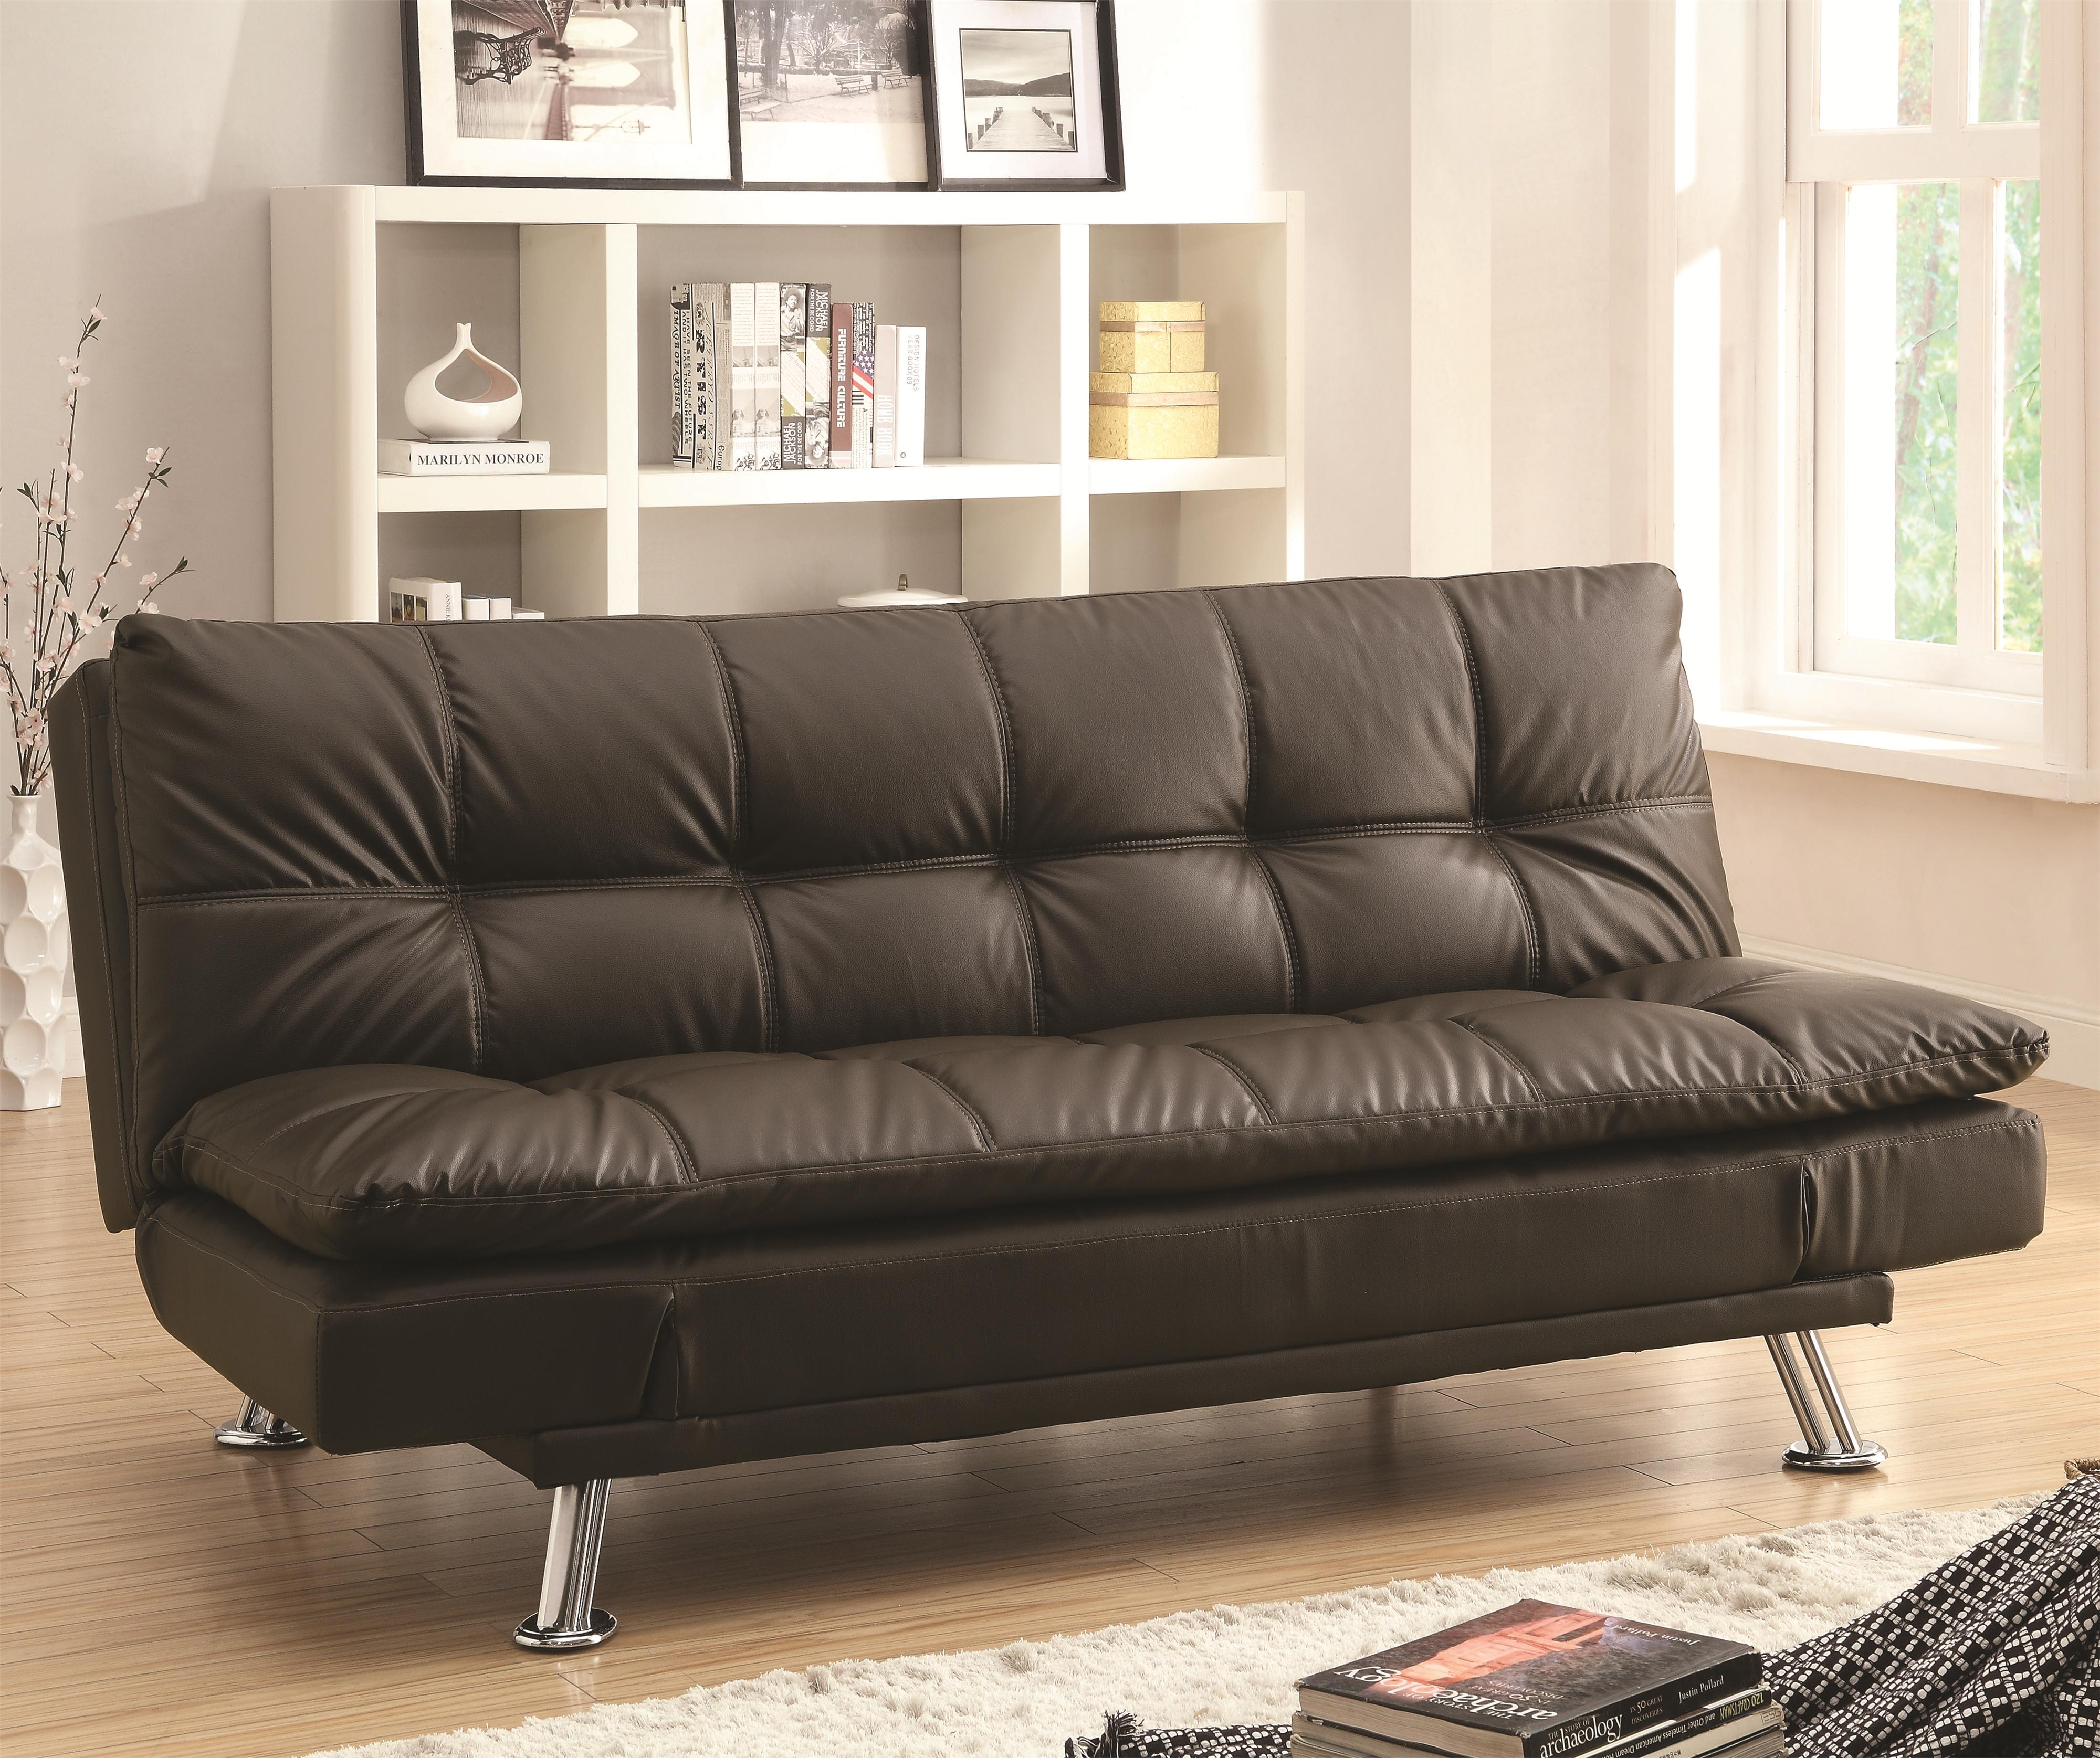 Coaster Dilleston 300321 Sofa Bed In Futon Style With